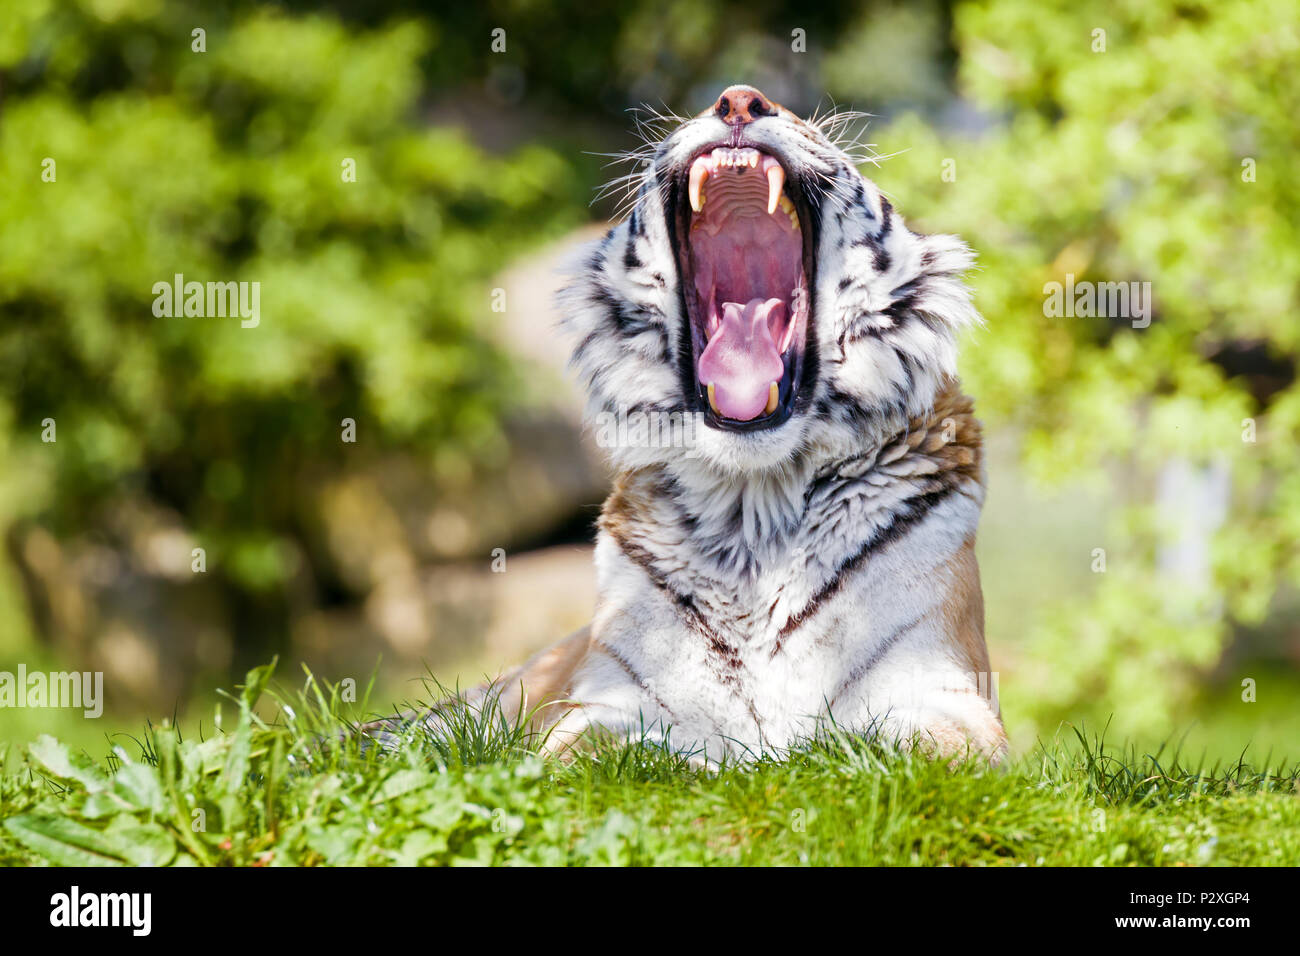 Amur, or Siberian Tiger, yawning in the afternoon sun. This endangered species is indigenous to far Eastern Russia. - Stock Image